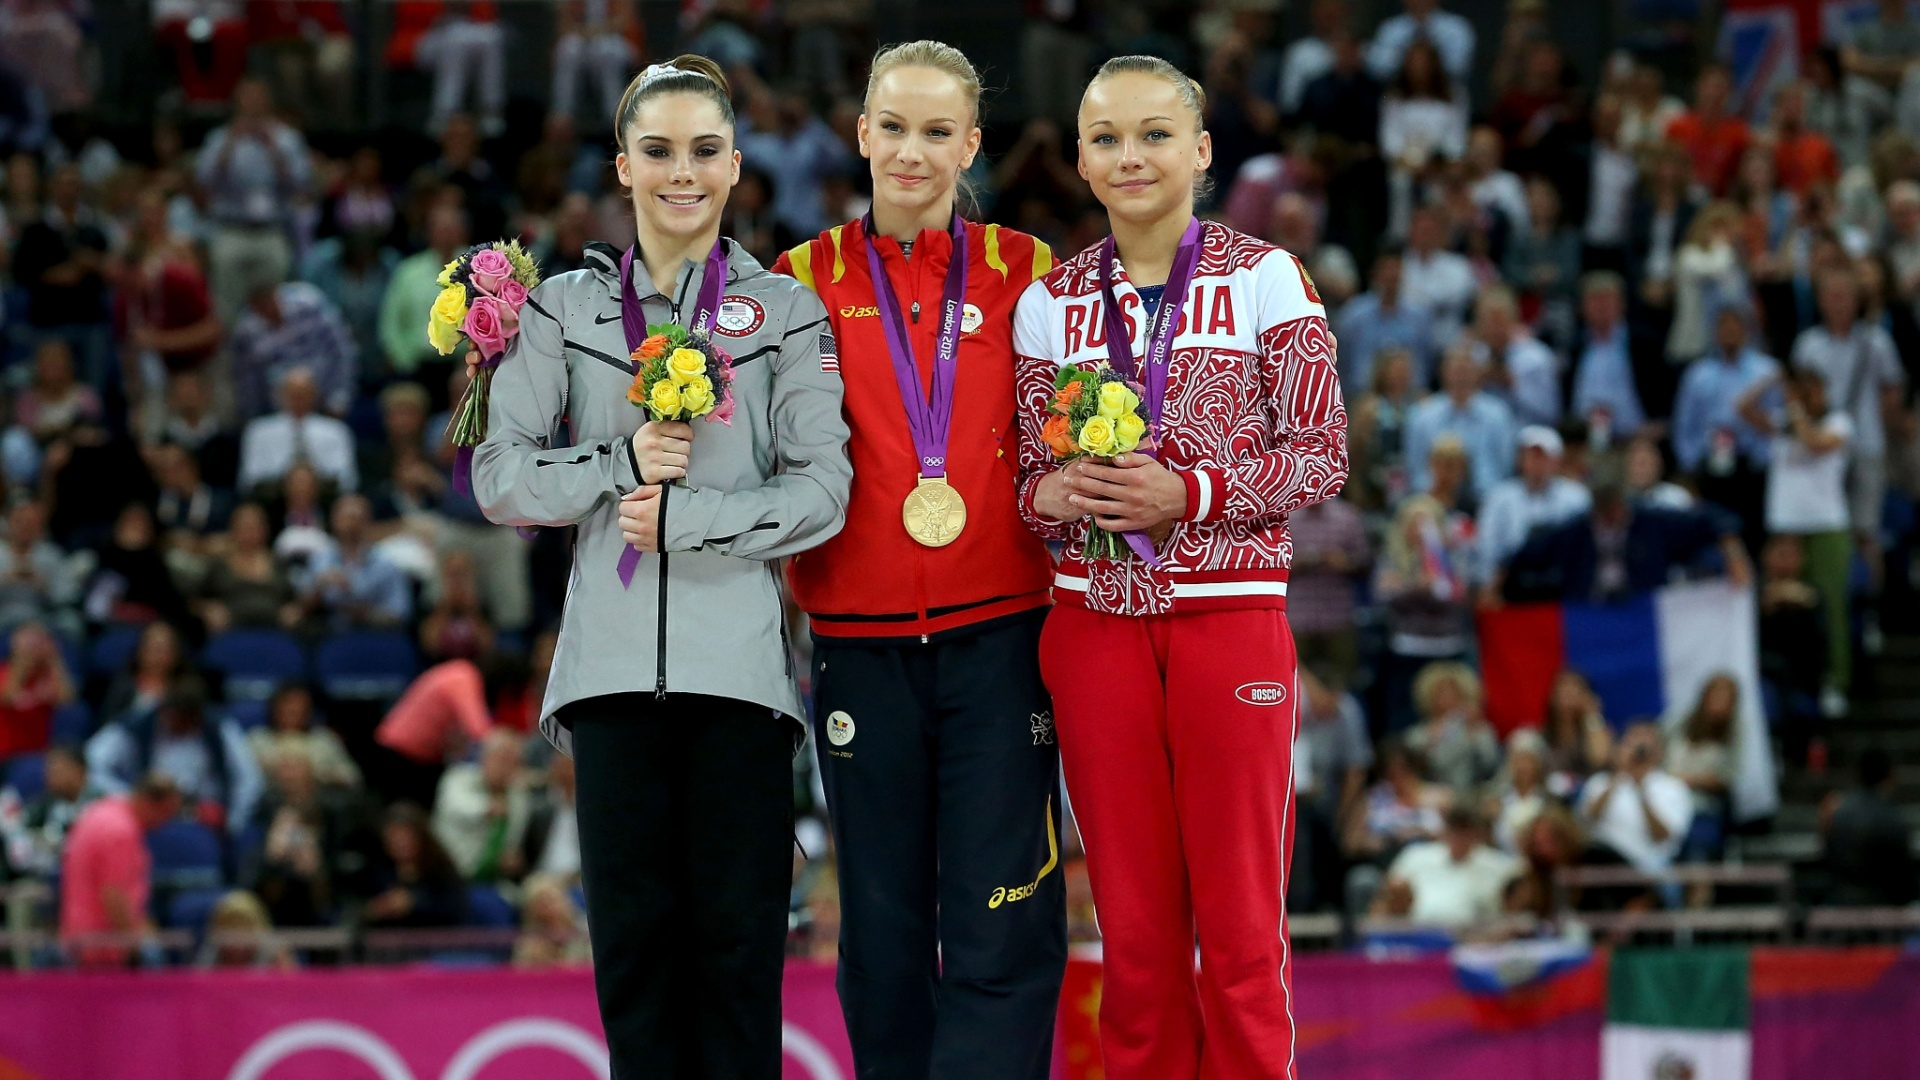 McKayla Maroney (e), Sandra Izbasa (c) e Maria Paseka mostram as medalhas de prata, ouro e bronze conquistadas por elas na final de salto